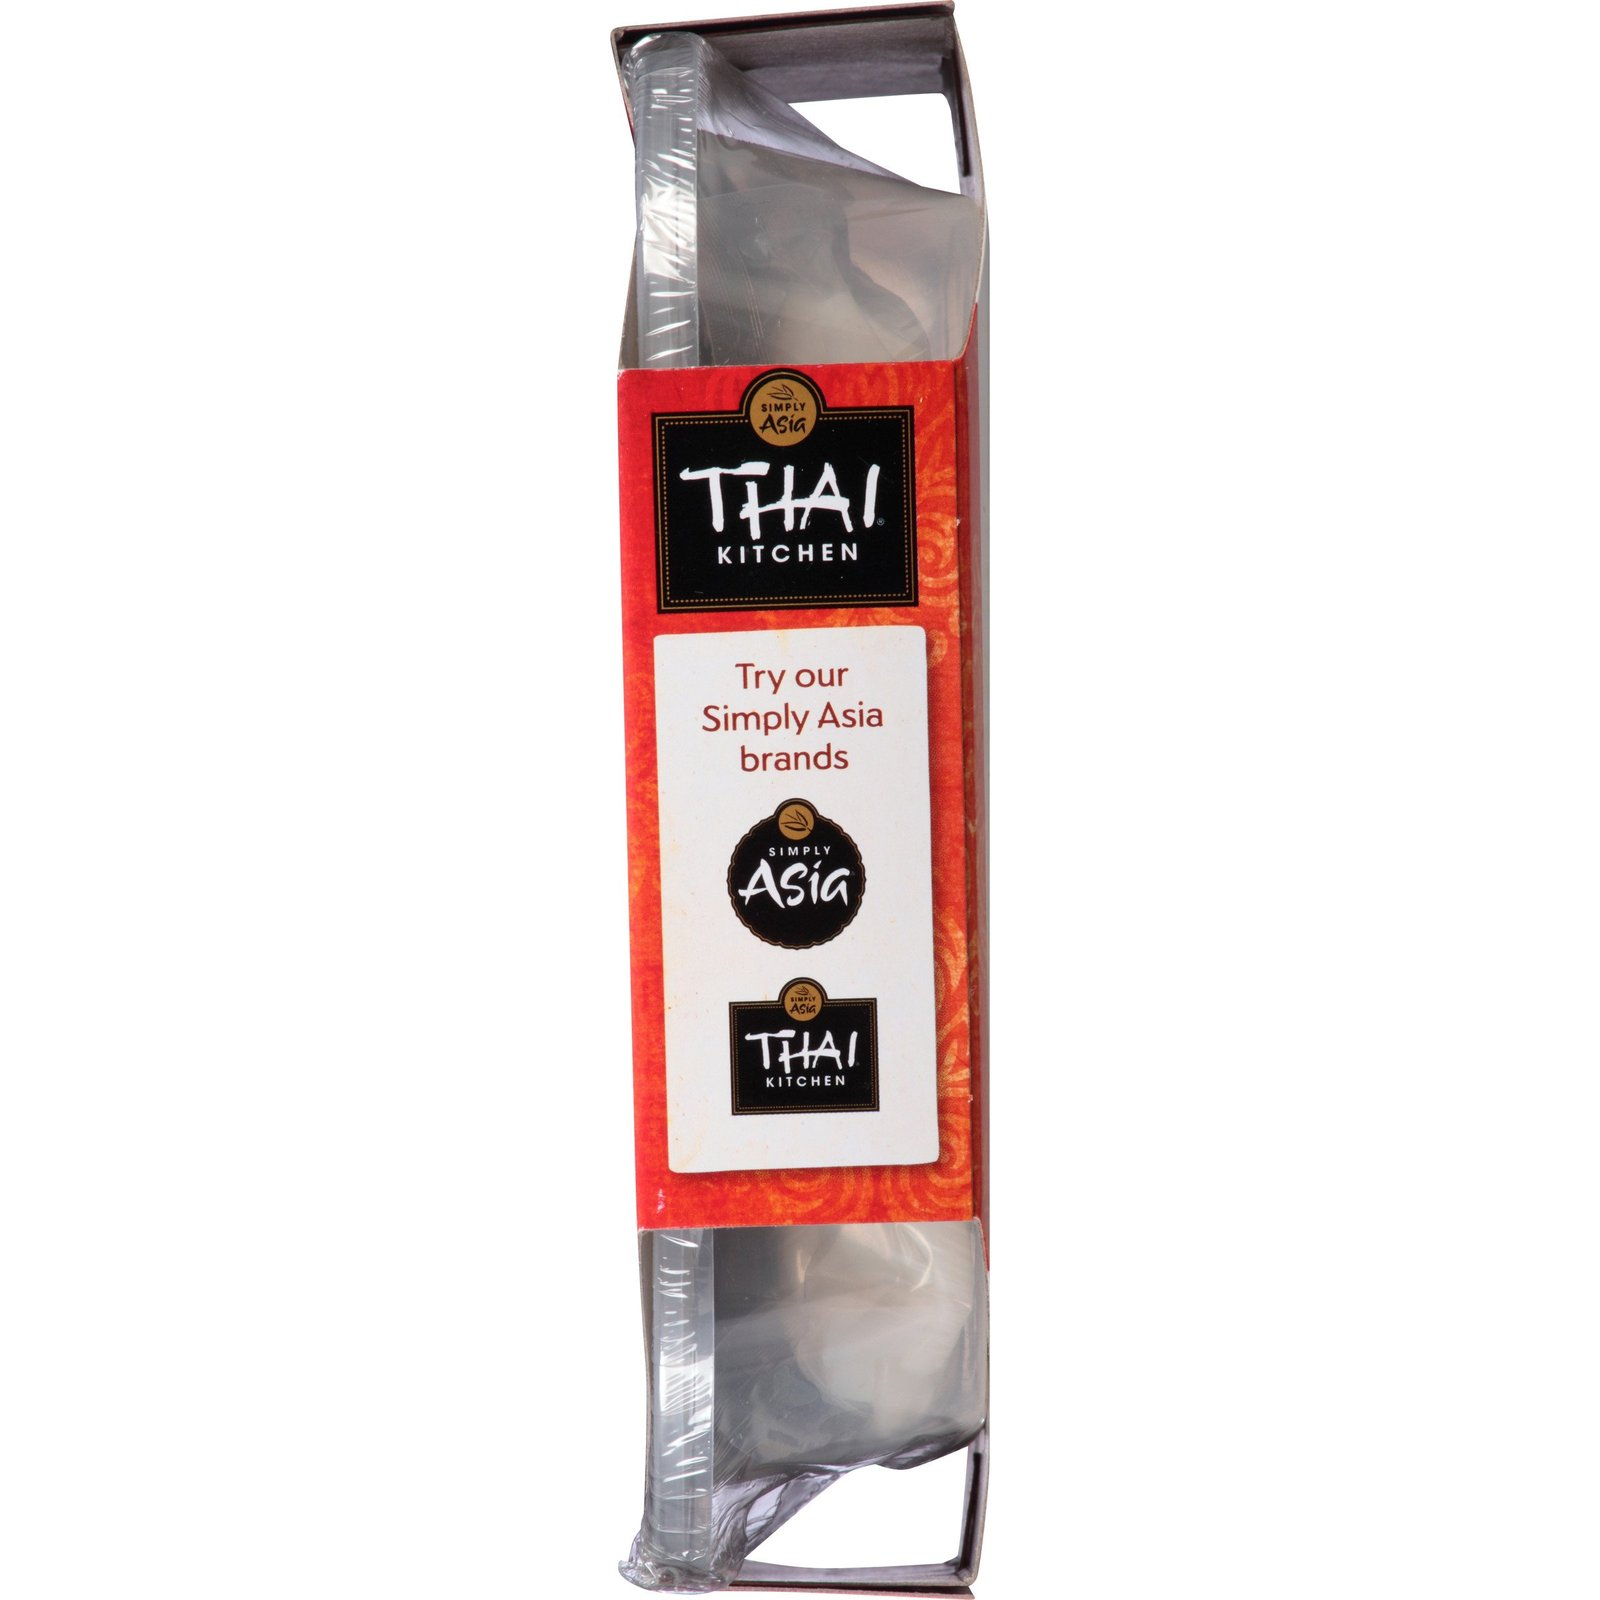 Thai Kitchen Pad Thai Rice Noodle Cart, 9.77 and similar items